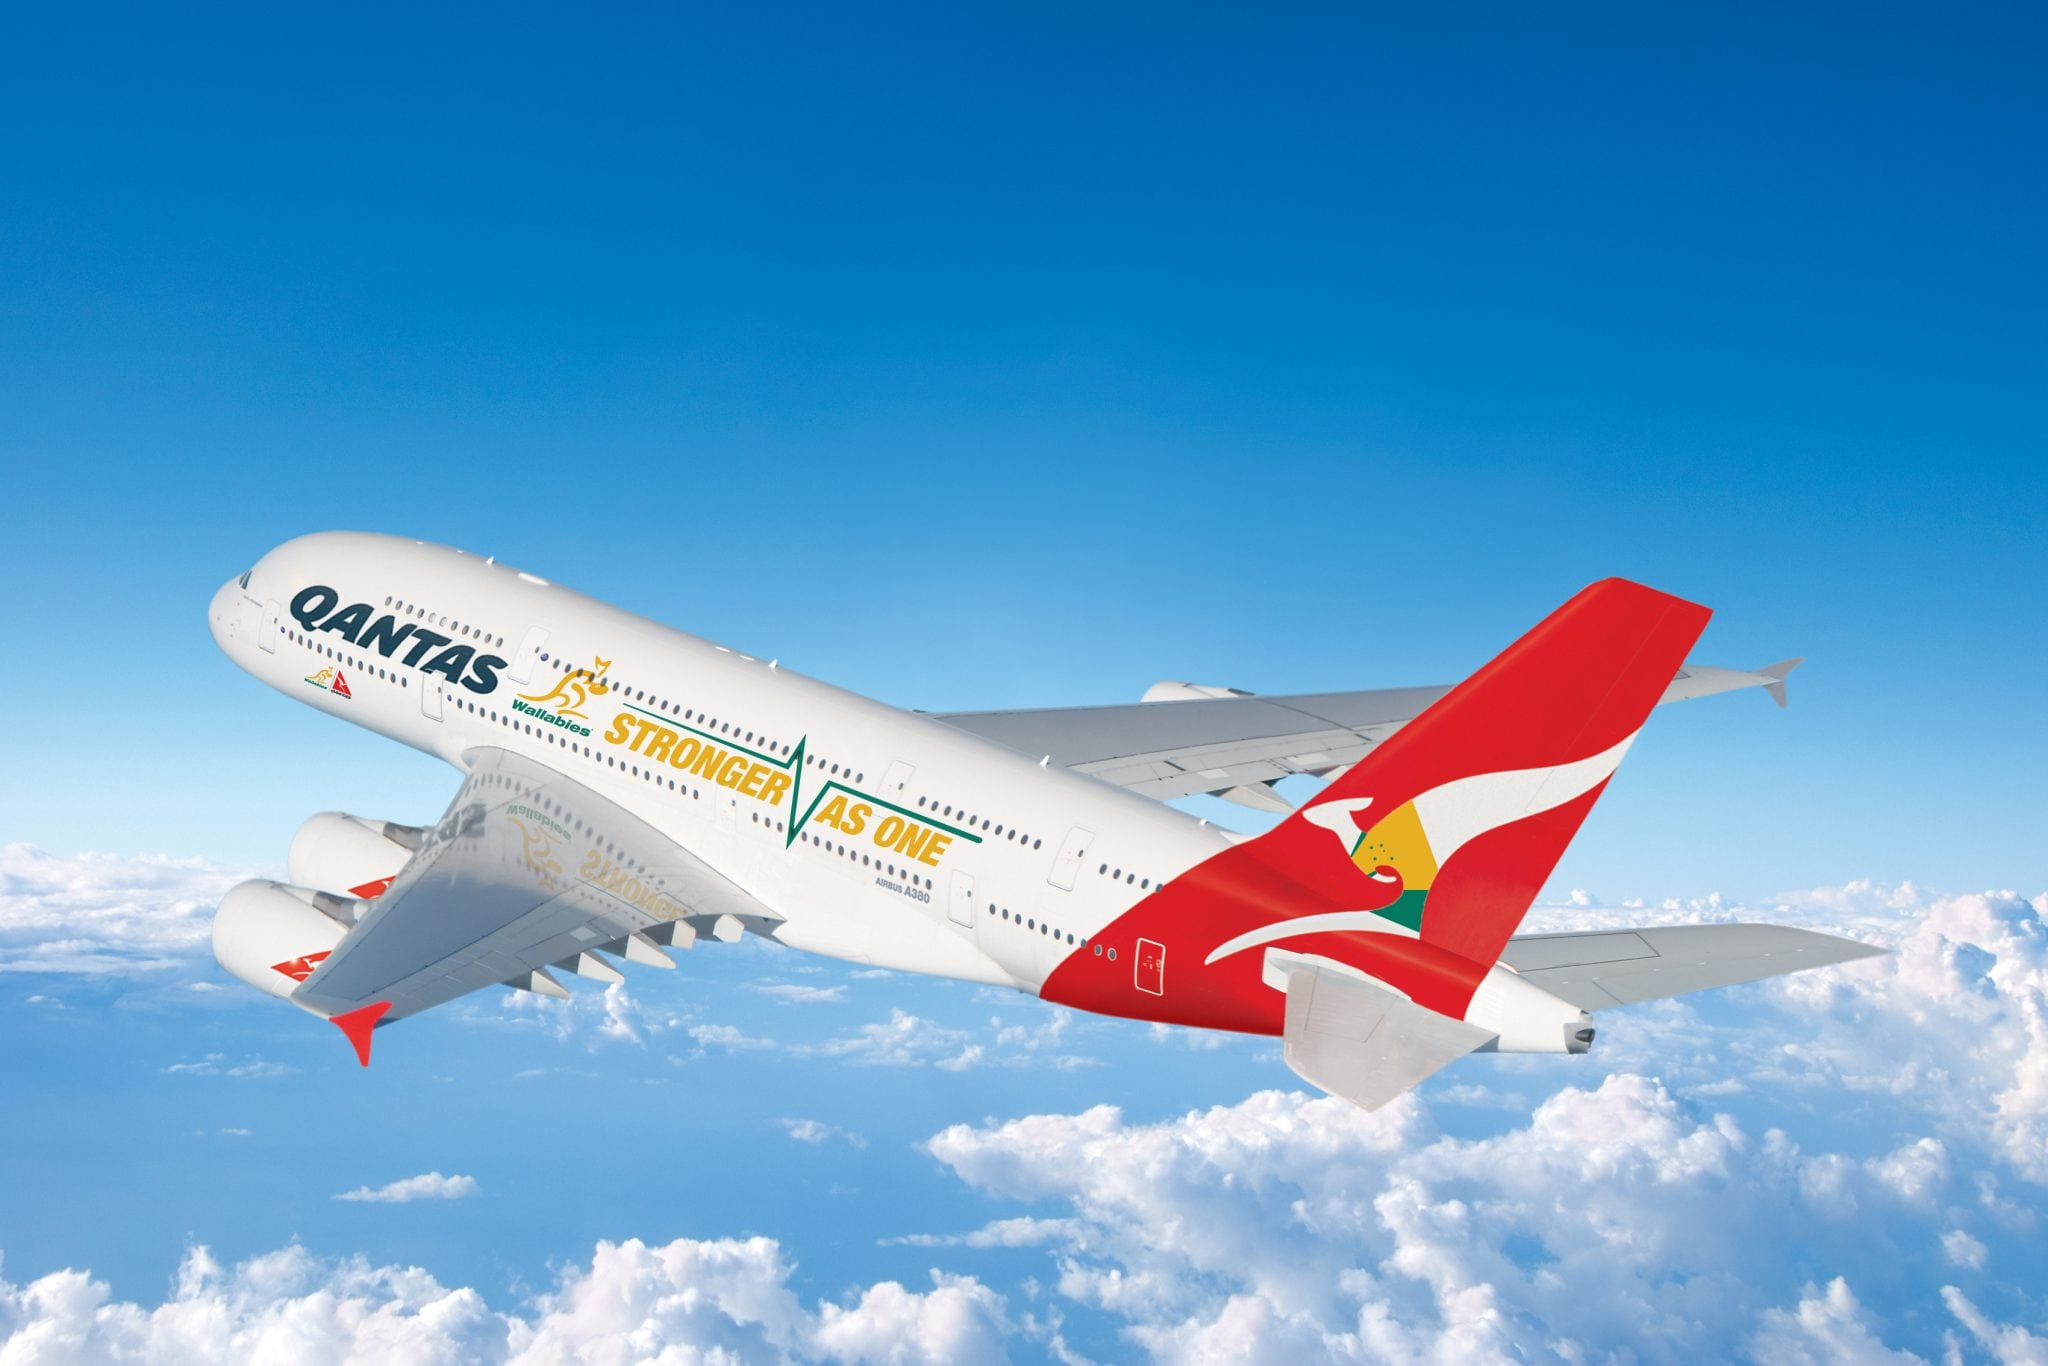 Qantas has selected ViaSat as its connectivity provider for domestic flights